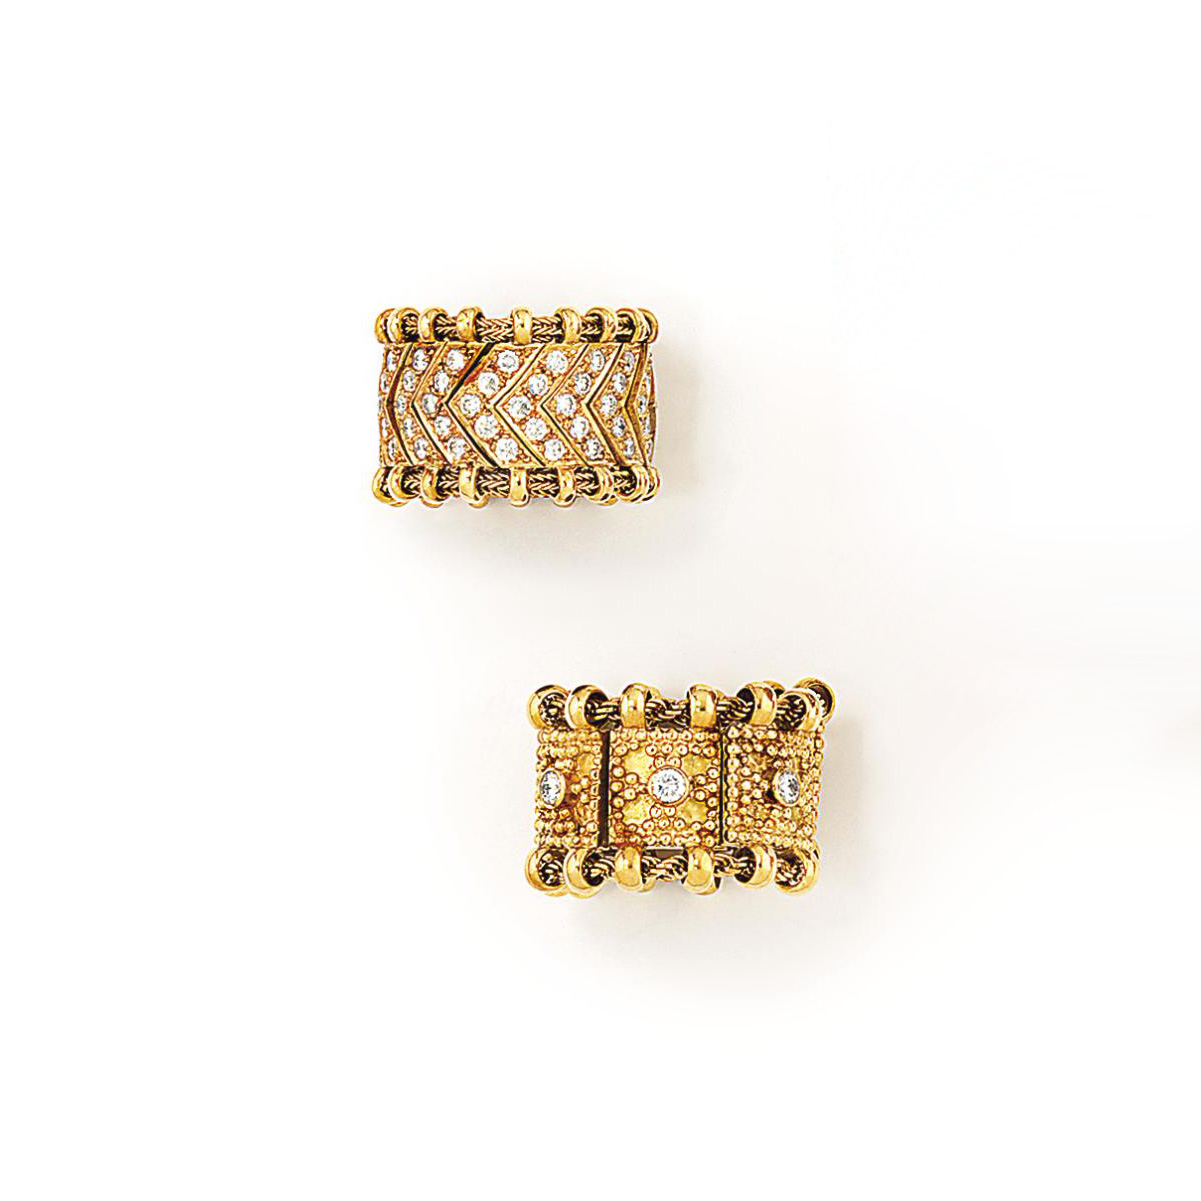 Two 18ct gold diamond-set rings, by Elisabeth Gage